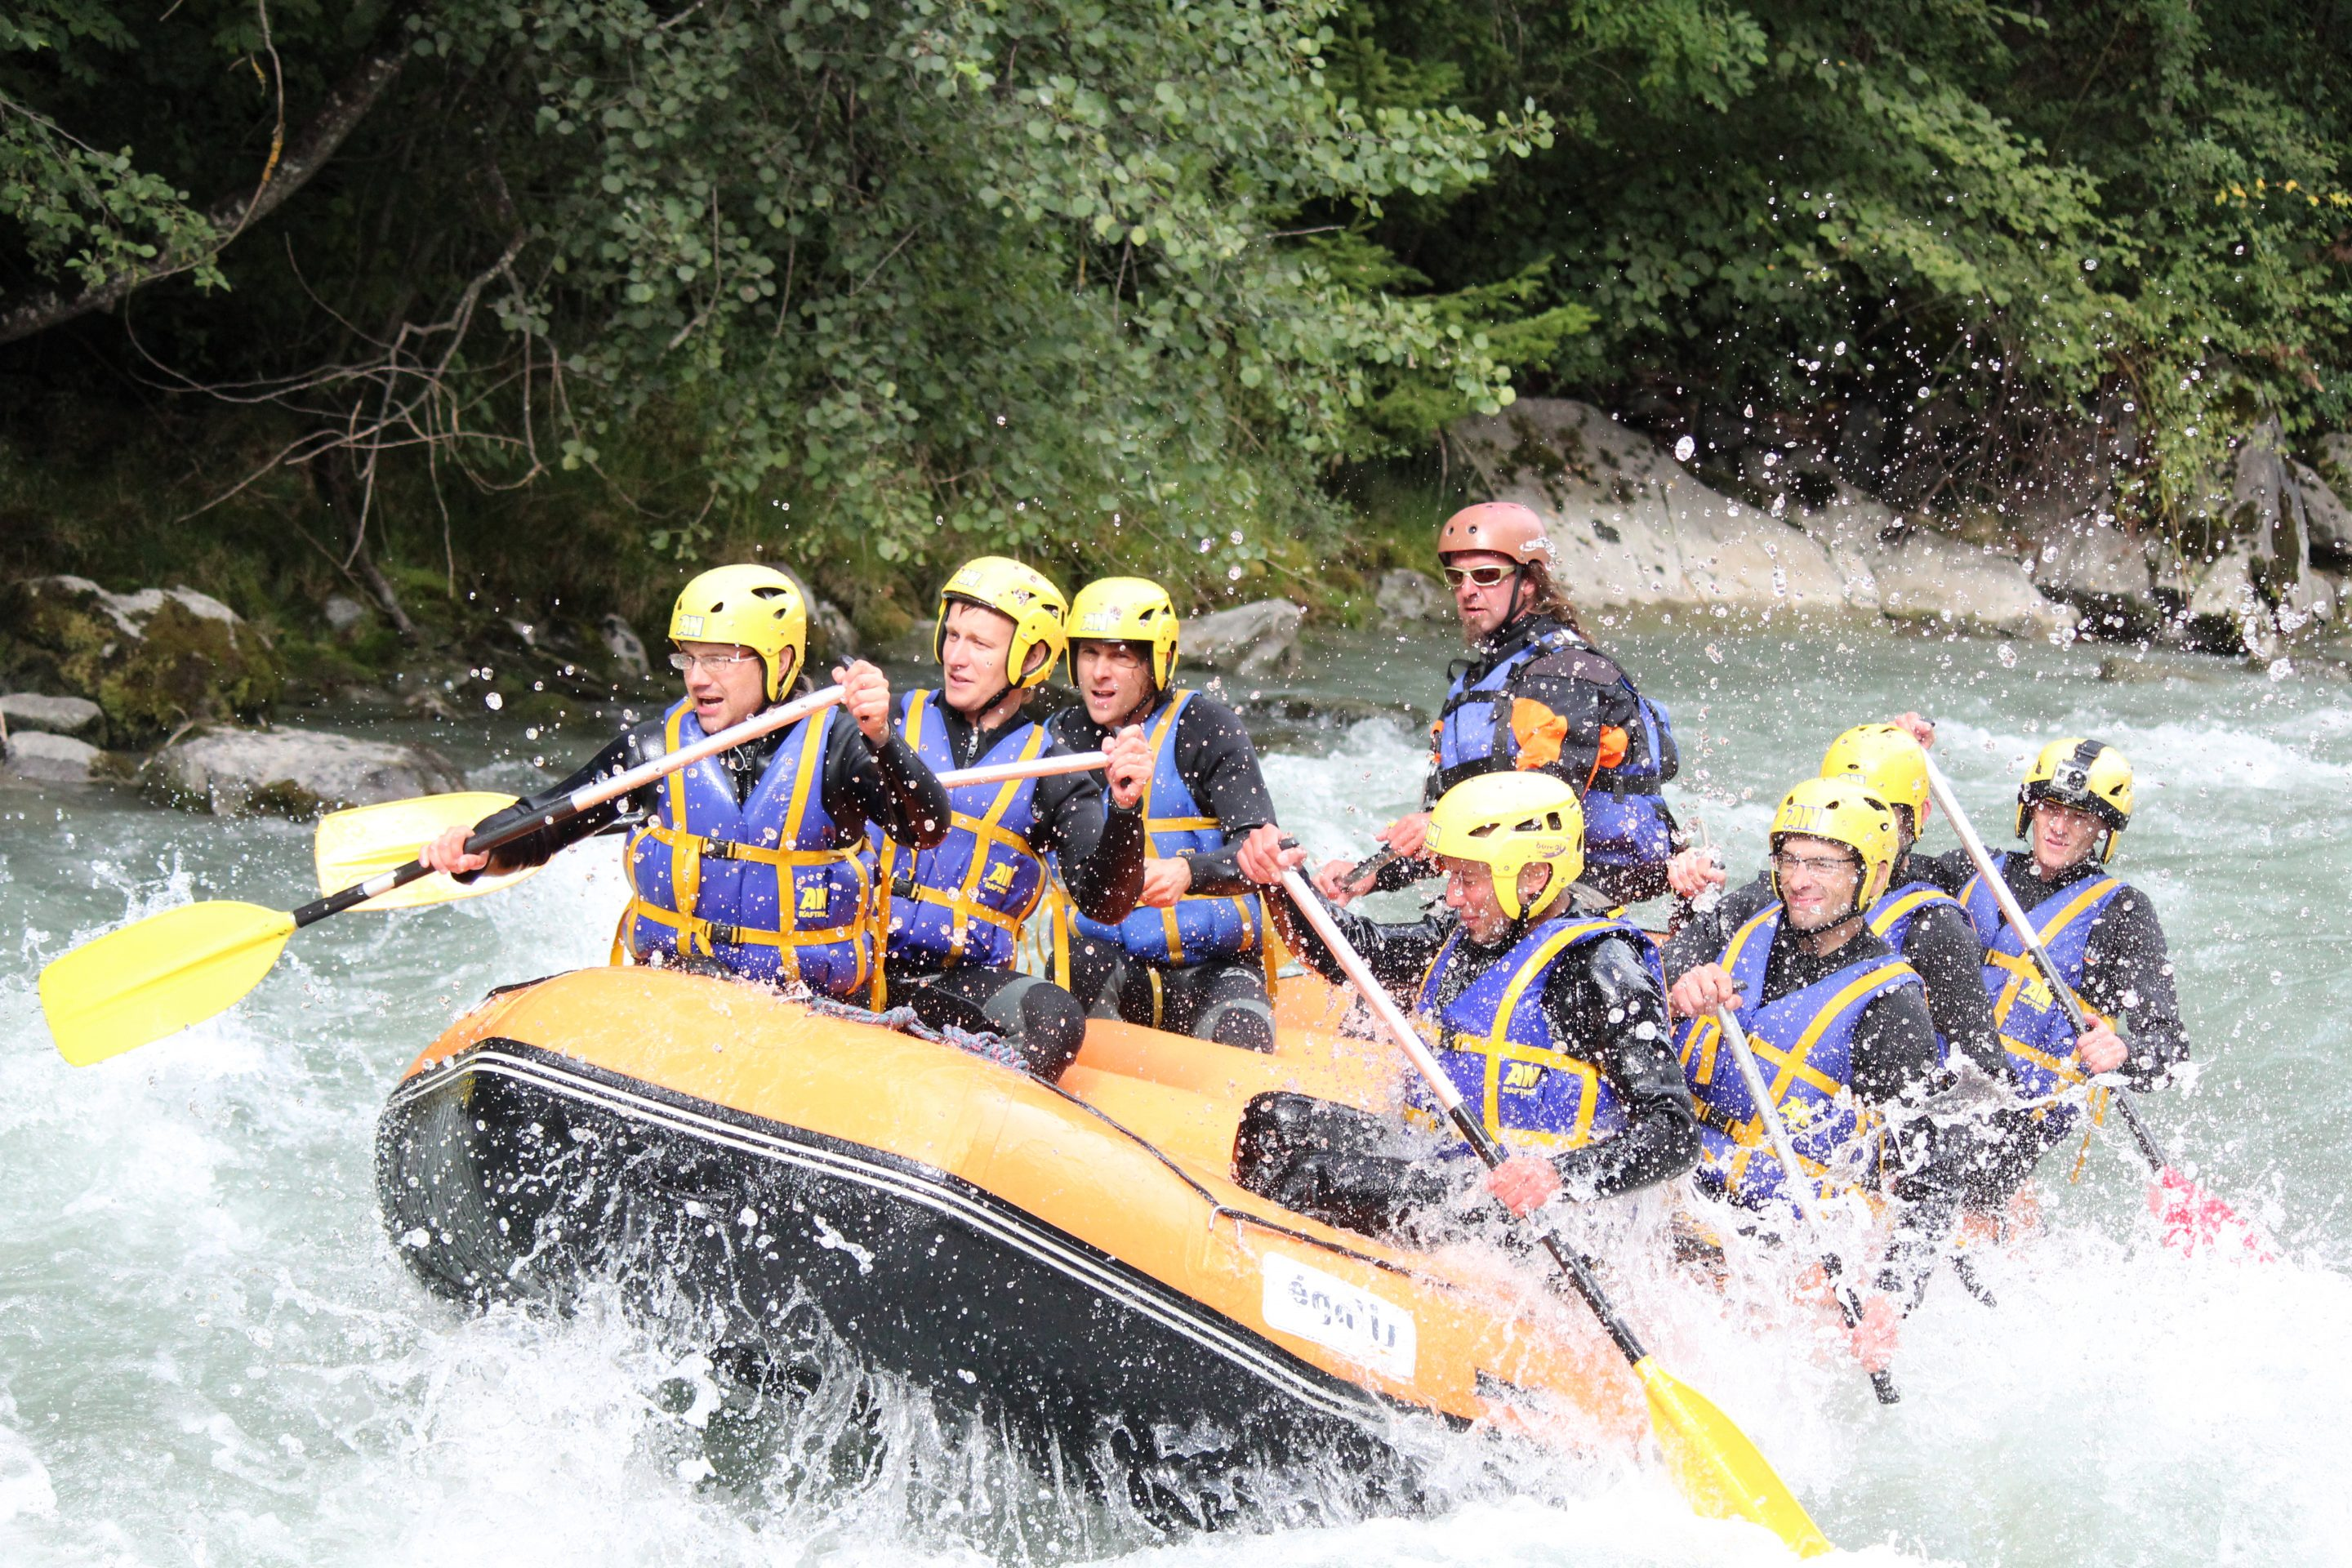 Rafting Grenoble